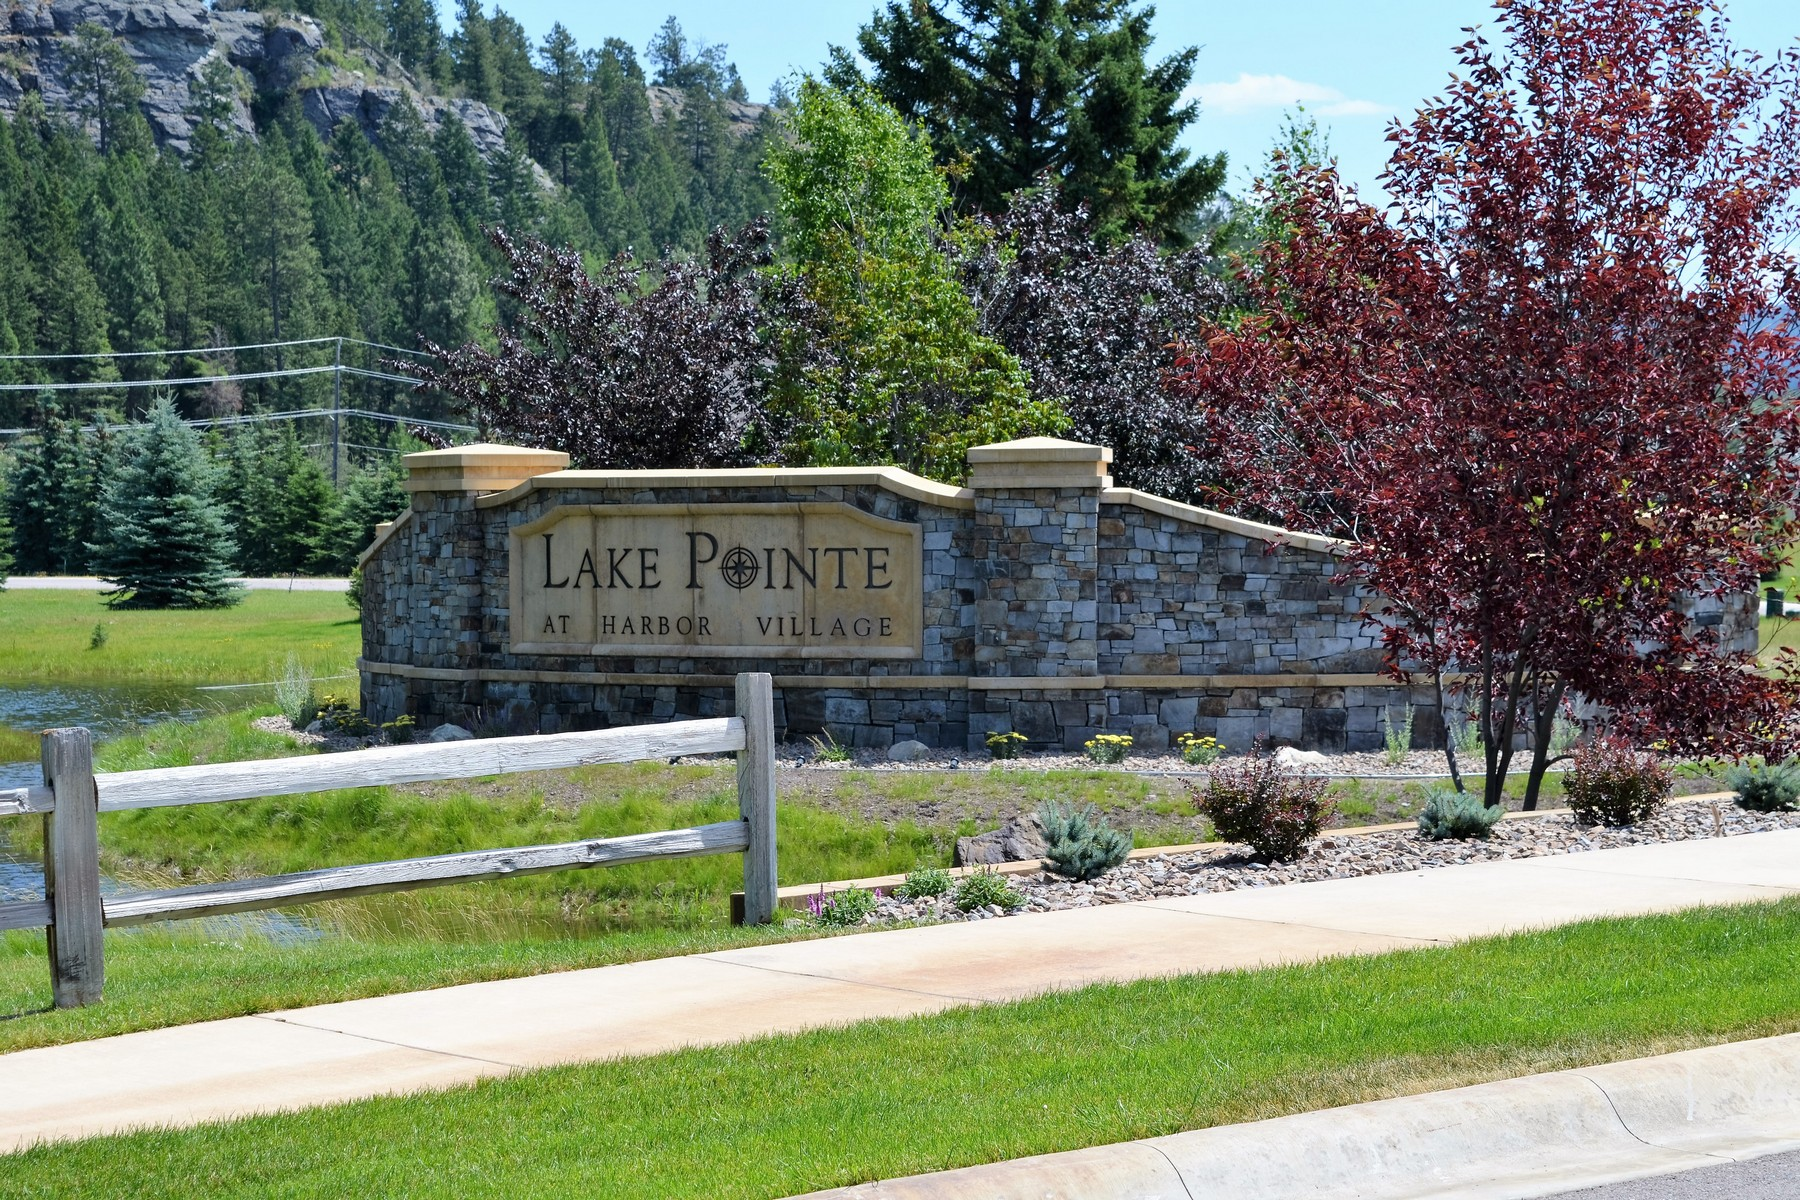 Land for Sale at 1299 Lake Pointe Dr , Bigfork, MT 59911 1299 Lake Pointe Dr Bigfork, Montana 59911 United States